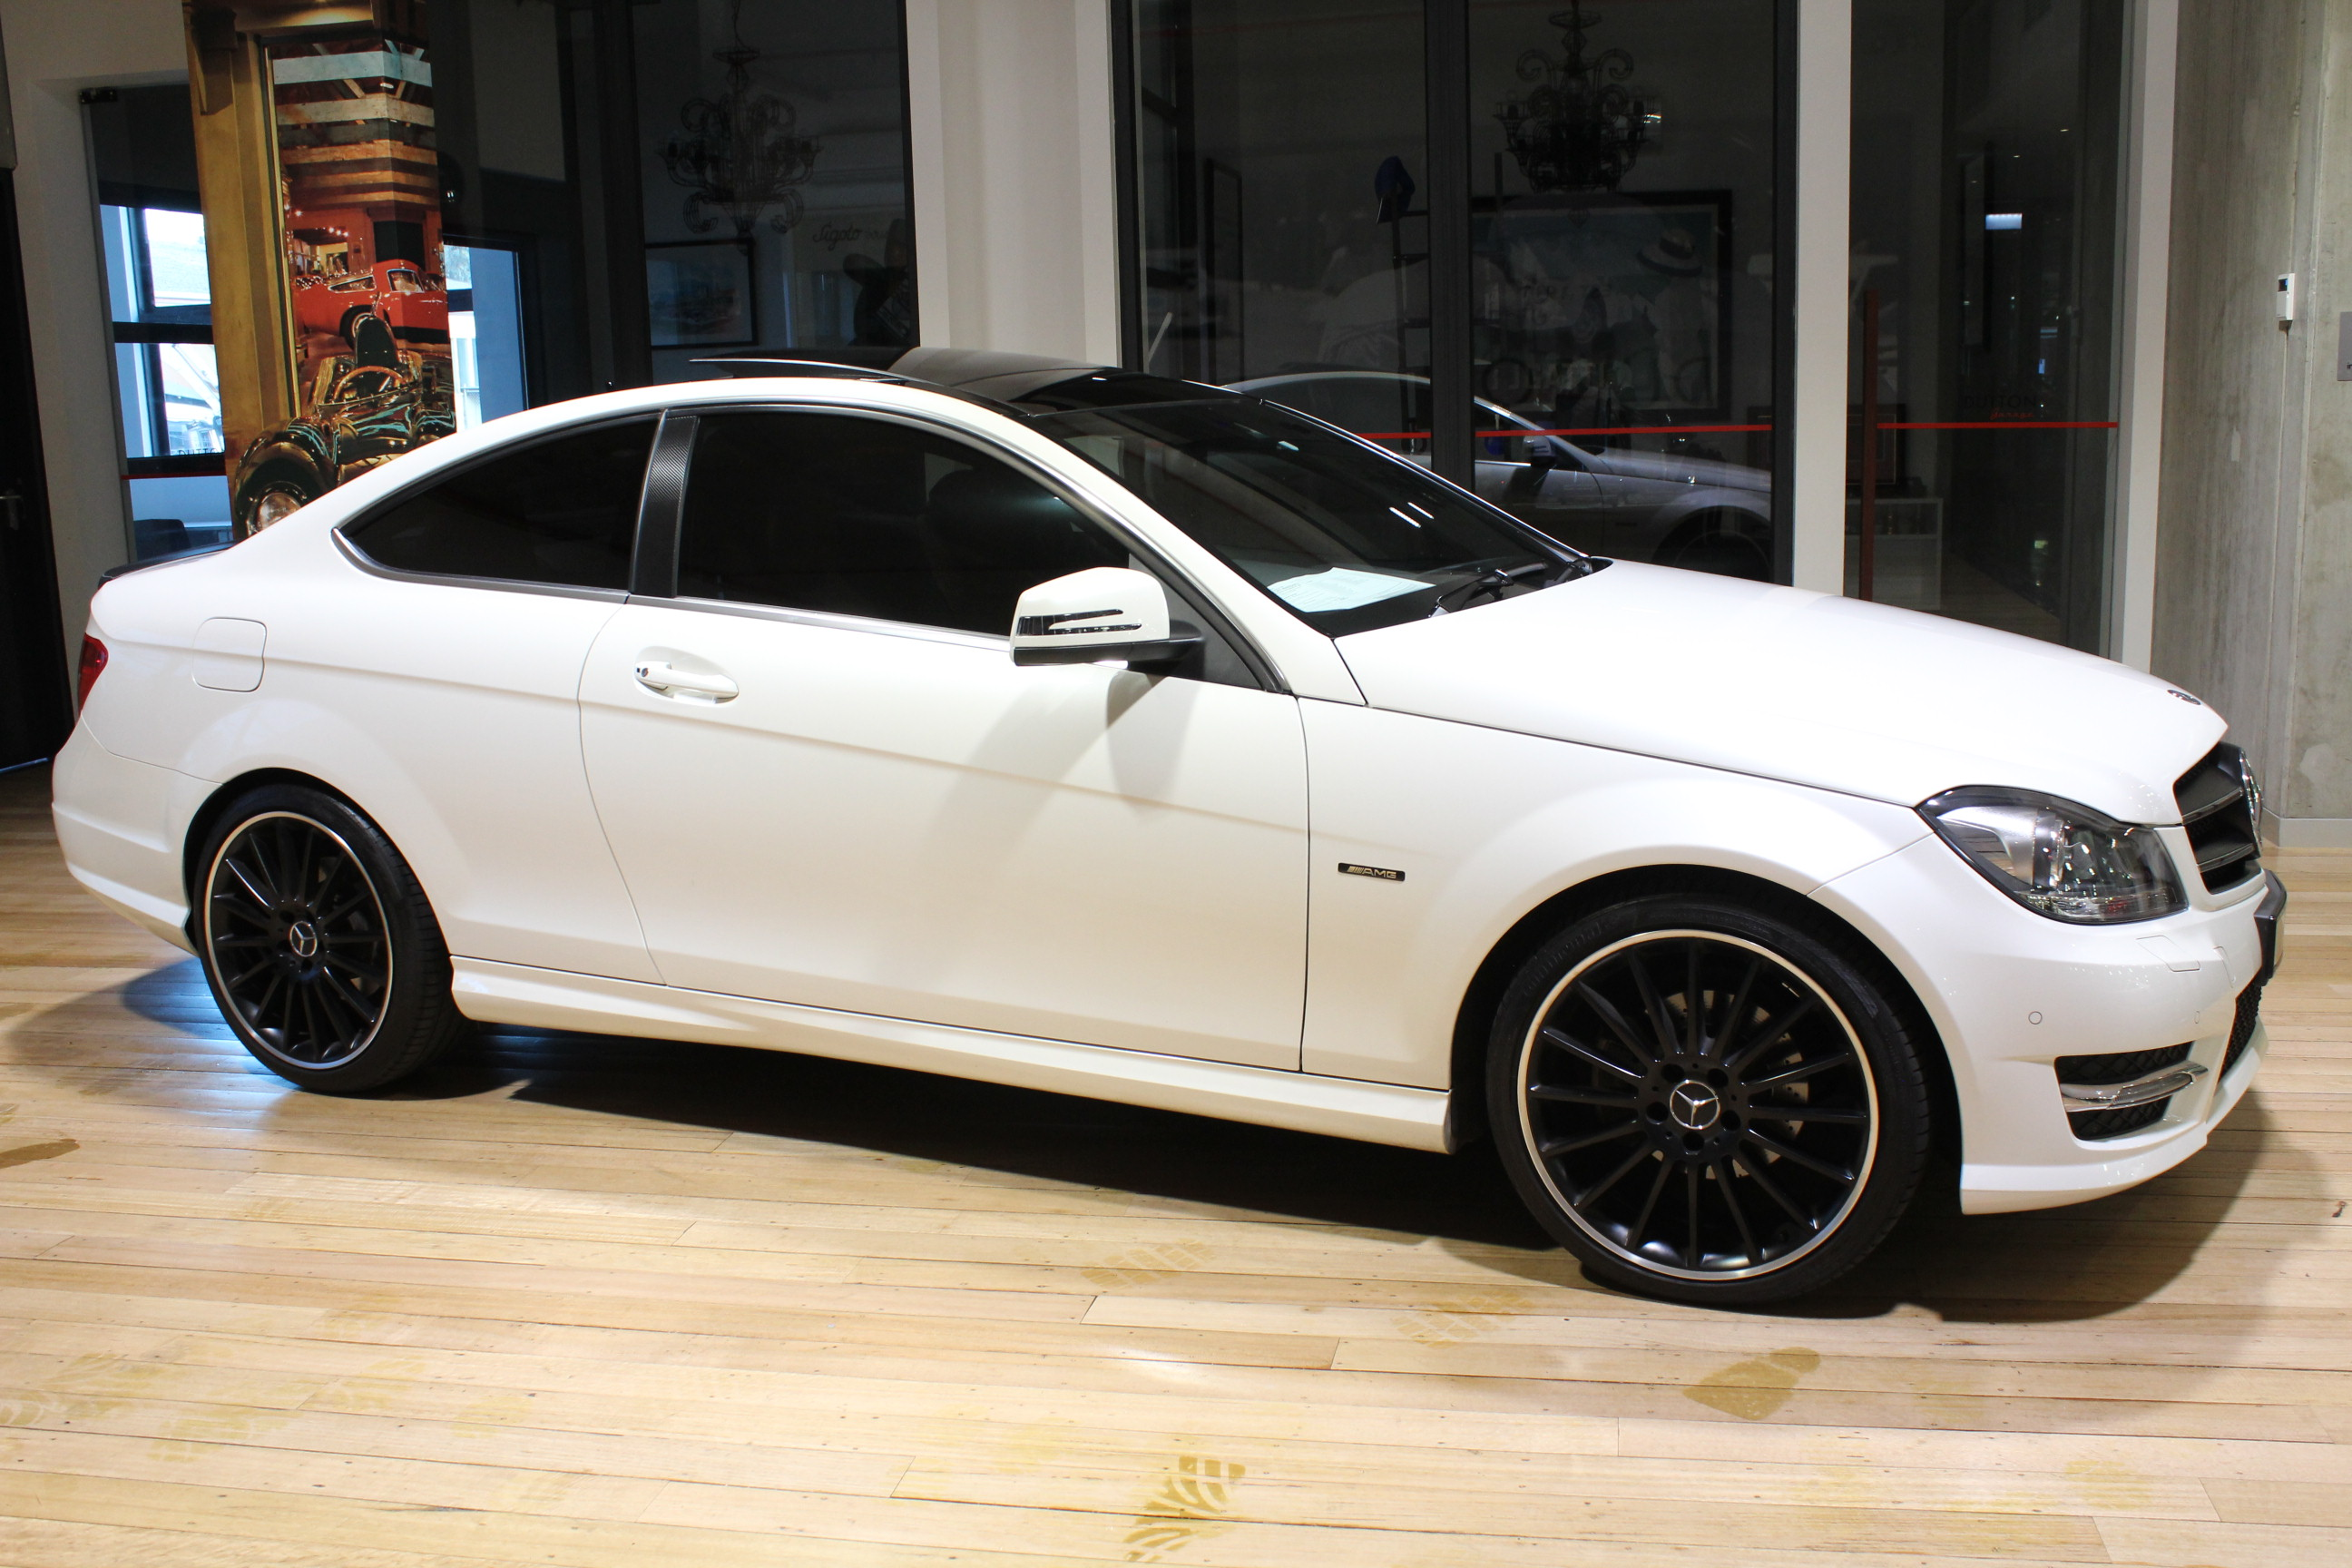 2011 Mercedes-Benz C250 CDI C204 BlueEFFICIENCY Coupe 2dr 7G-TRONIC 7sp 2.1DTT [Rel. May] - for sale in Australia